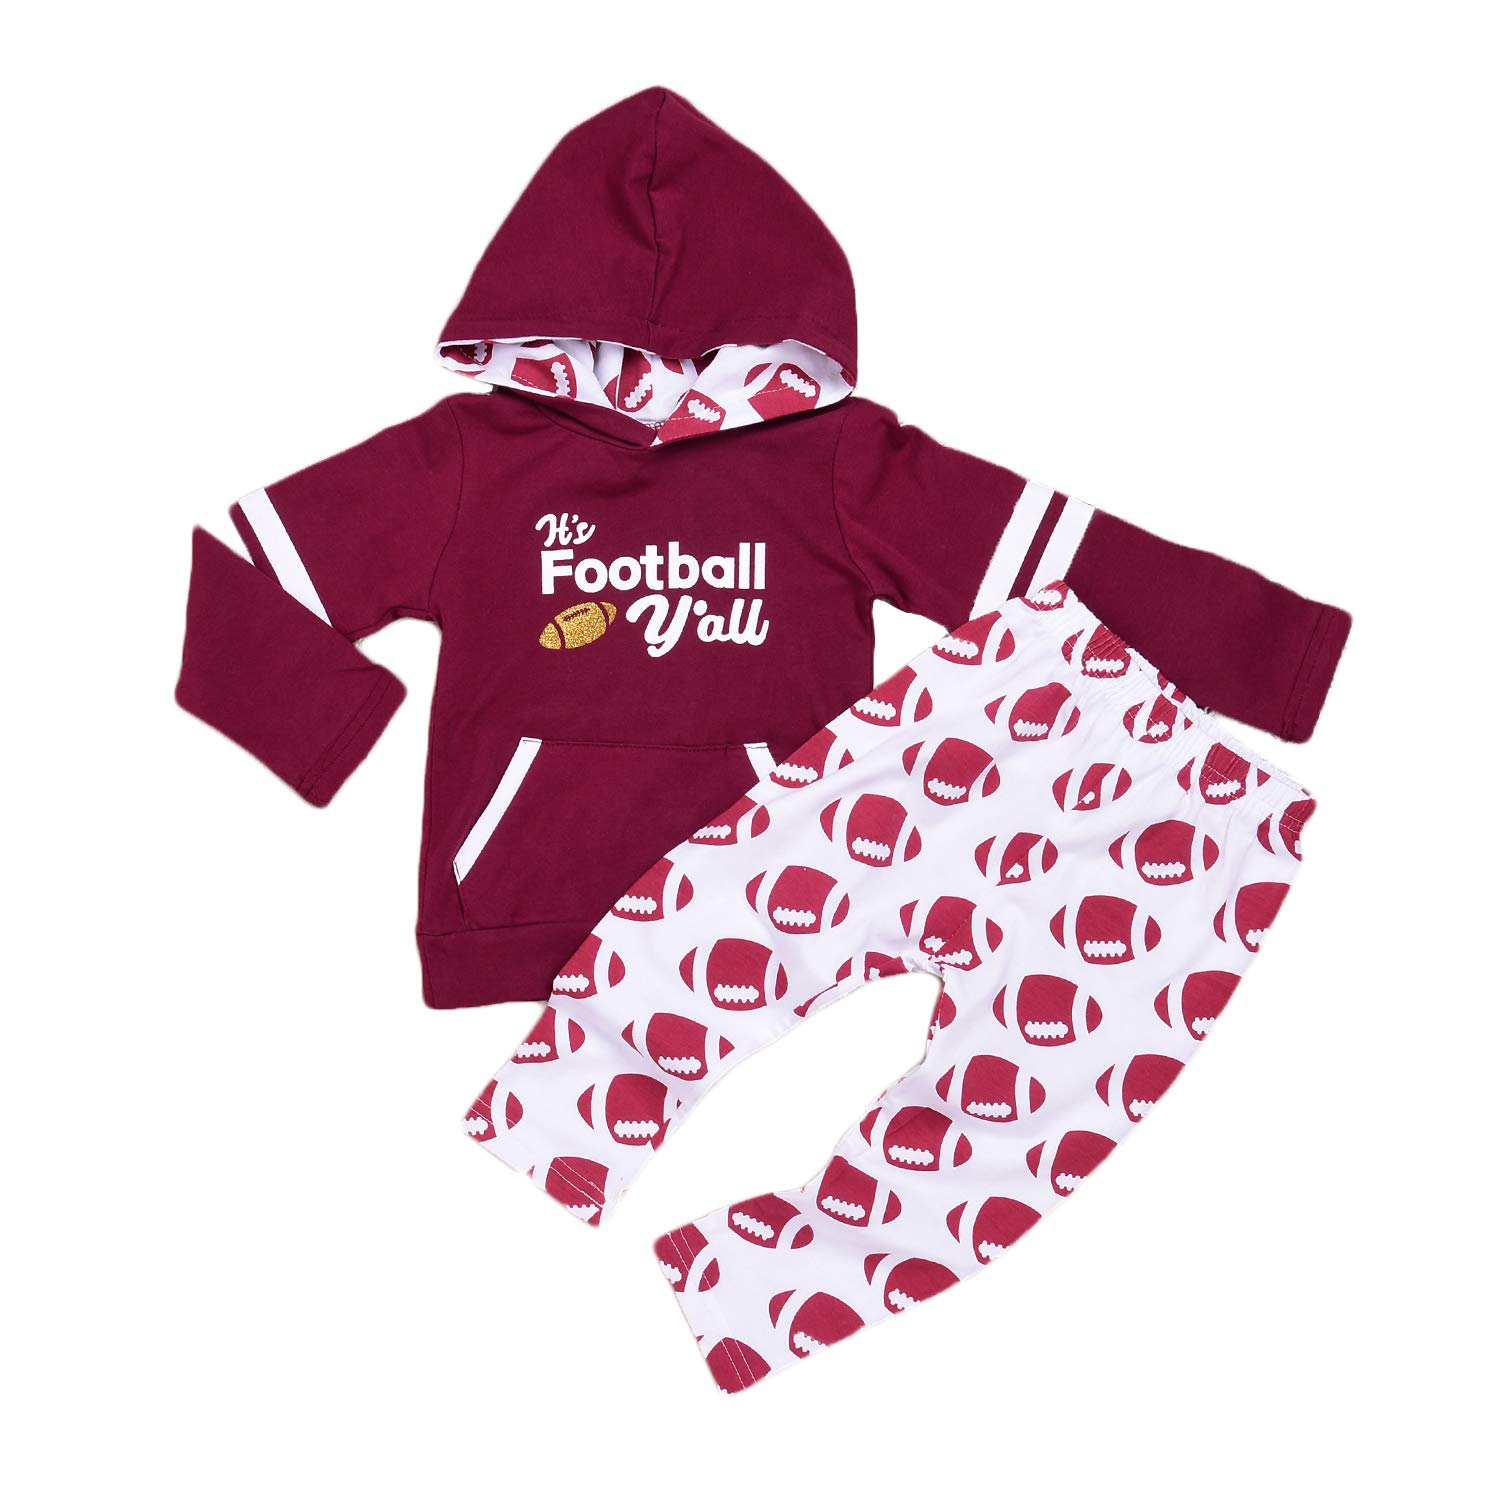 ASISOL Baby Girl 2Pcs Clothing Set Letter Football Print Cotton Hoodies with Pocket + Pants (18-24m(110), Crimson)